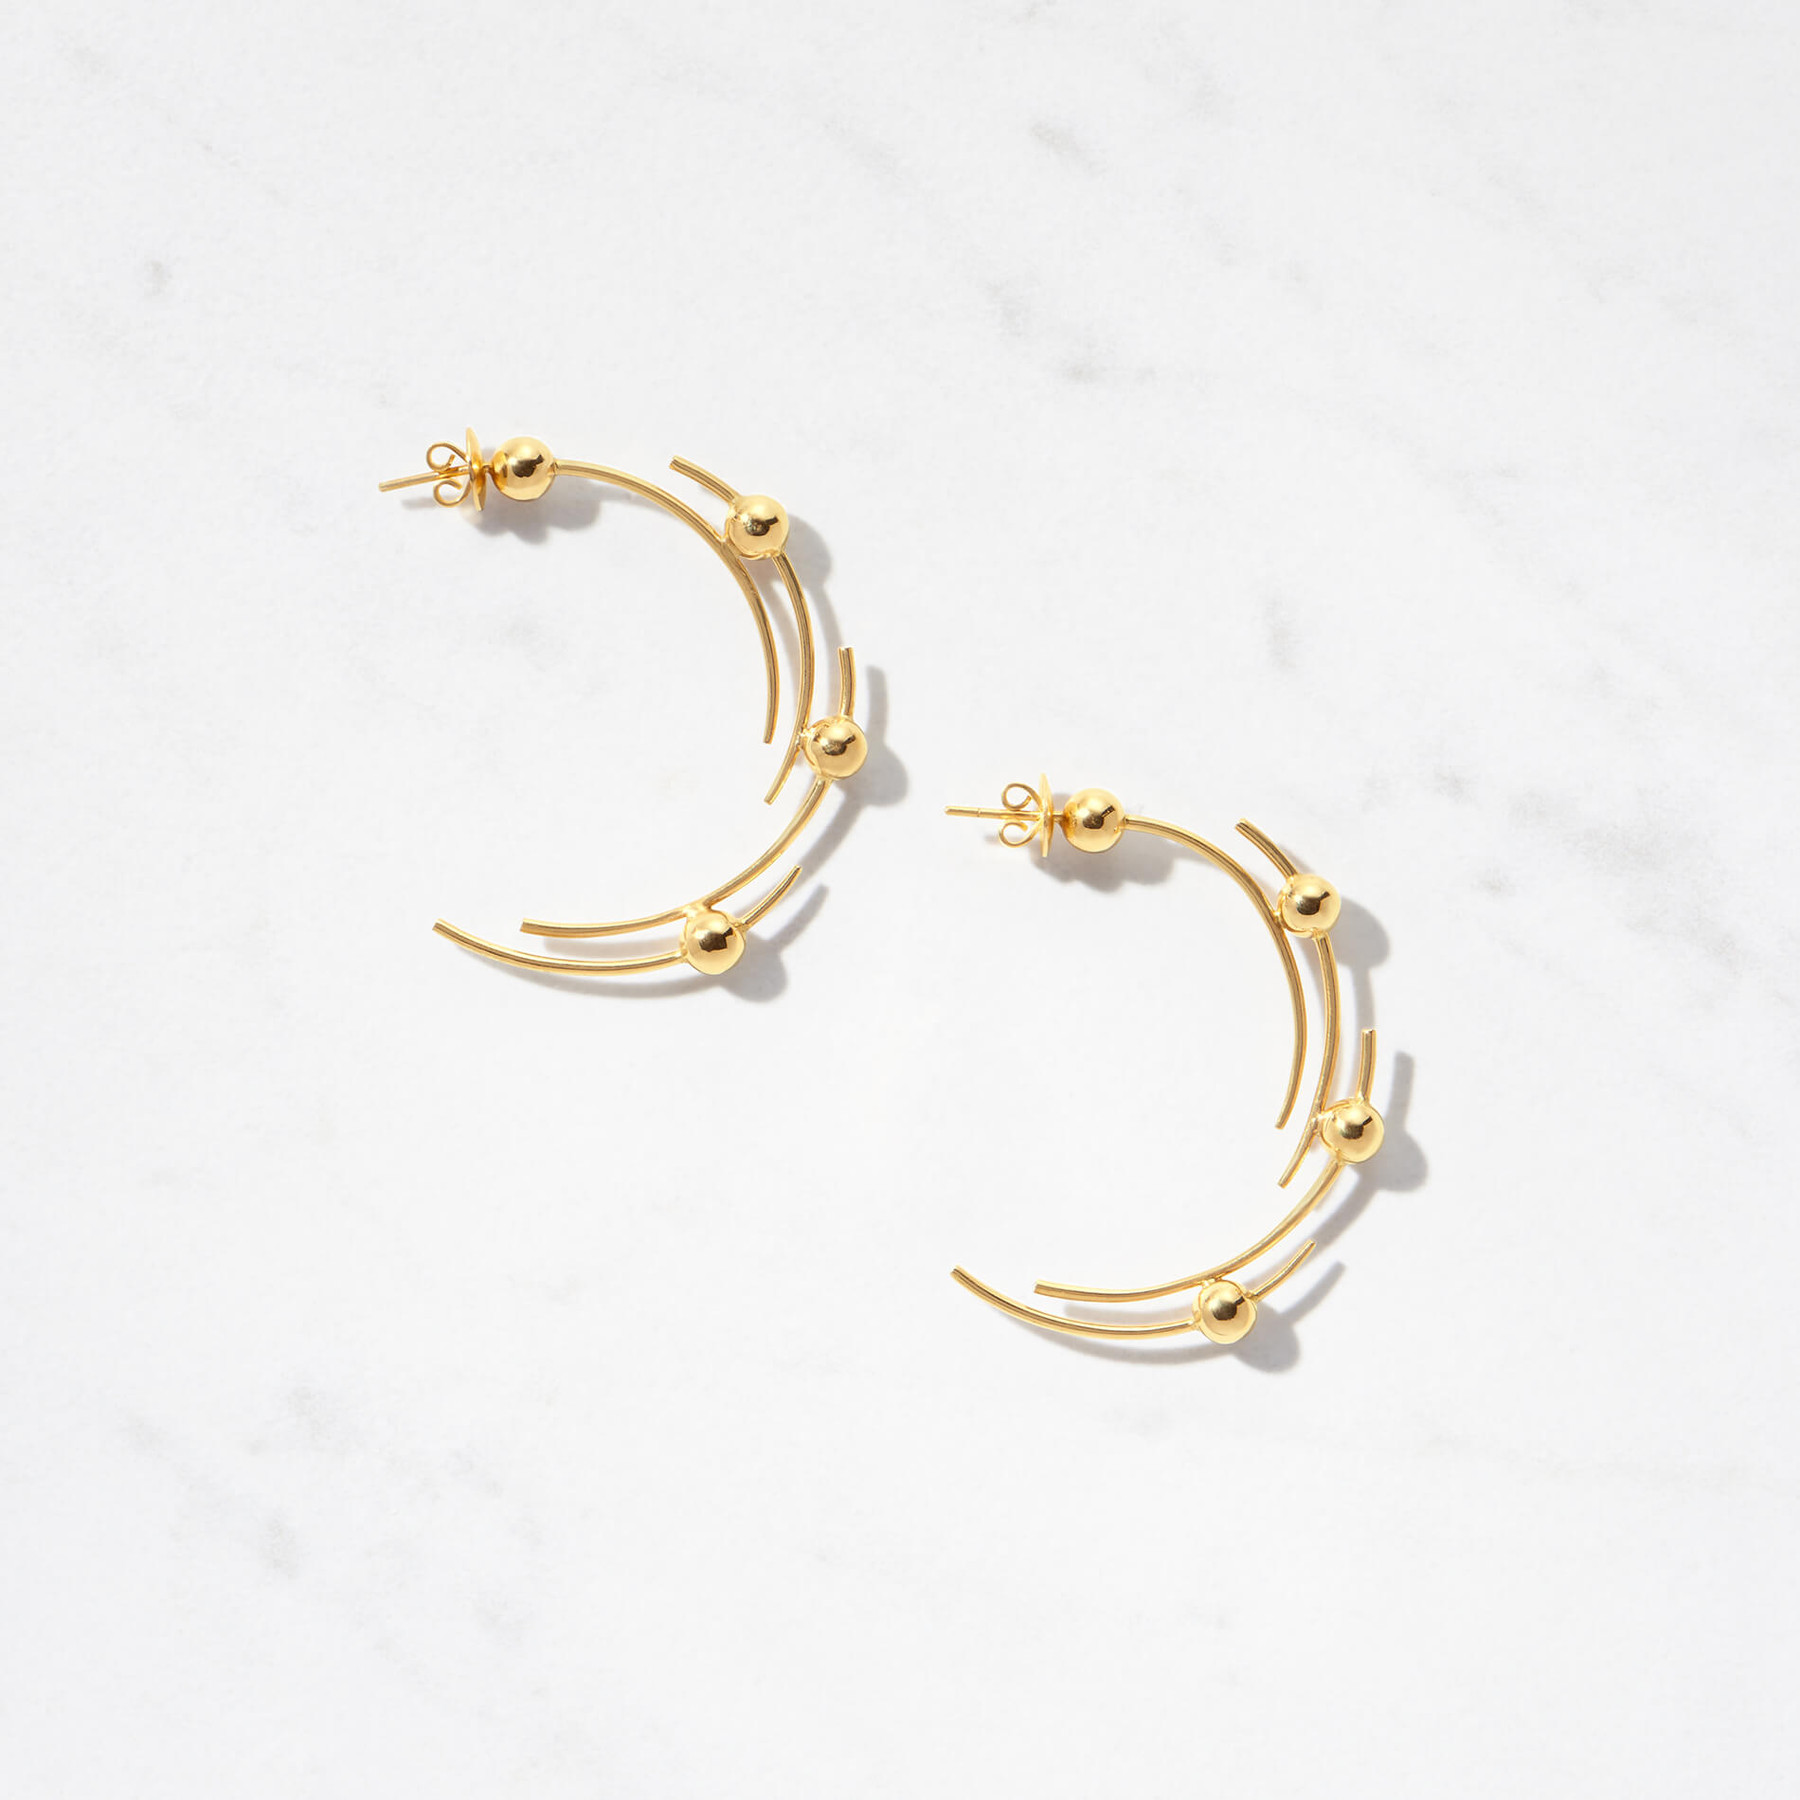 Floating arcs collide with multiple golden moons to create our Carina Earrings. Handcrafted from 22 karat gold and possessing a gold weight of approximately 16 grams, Carina is inspired by the Carina Constellation in the Southern skies.